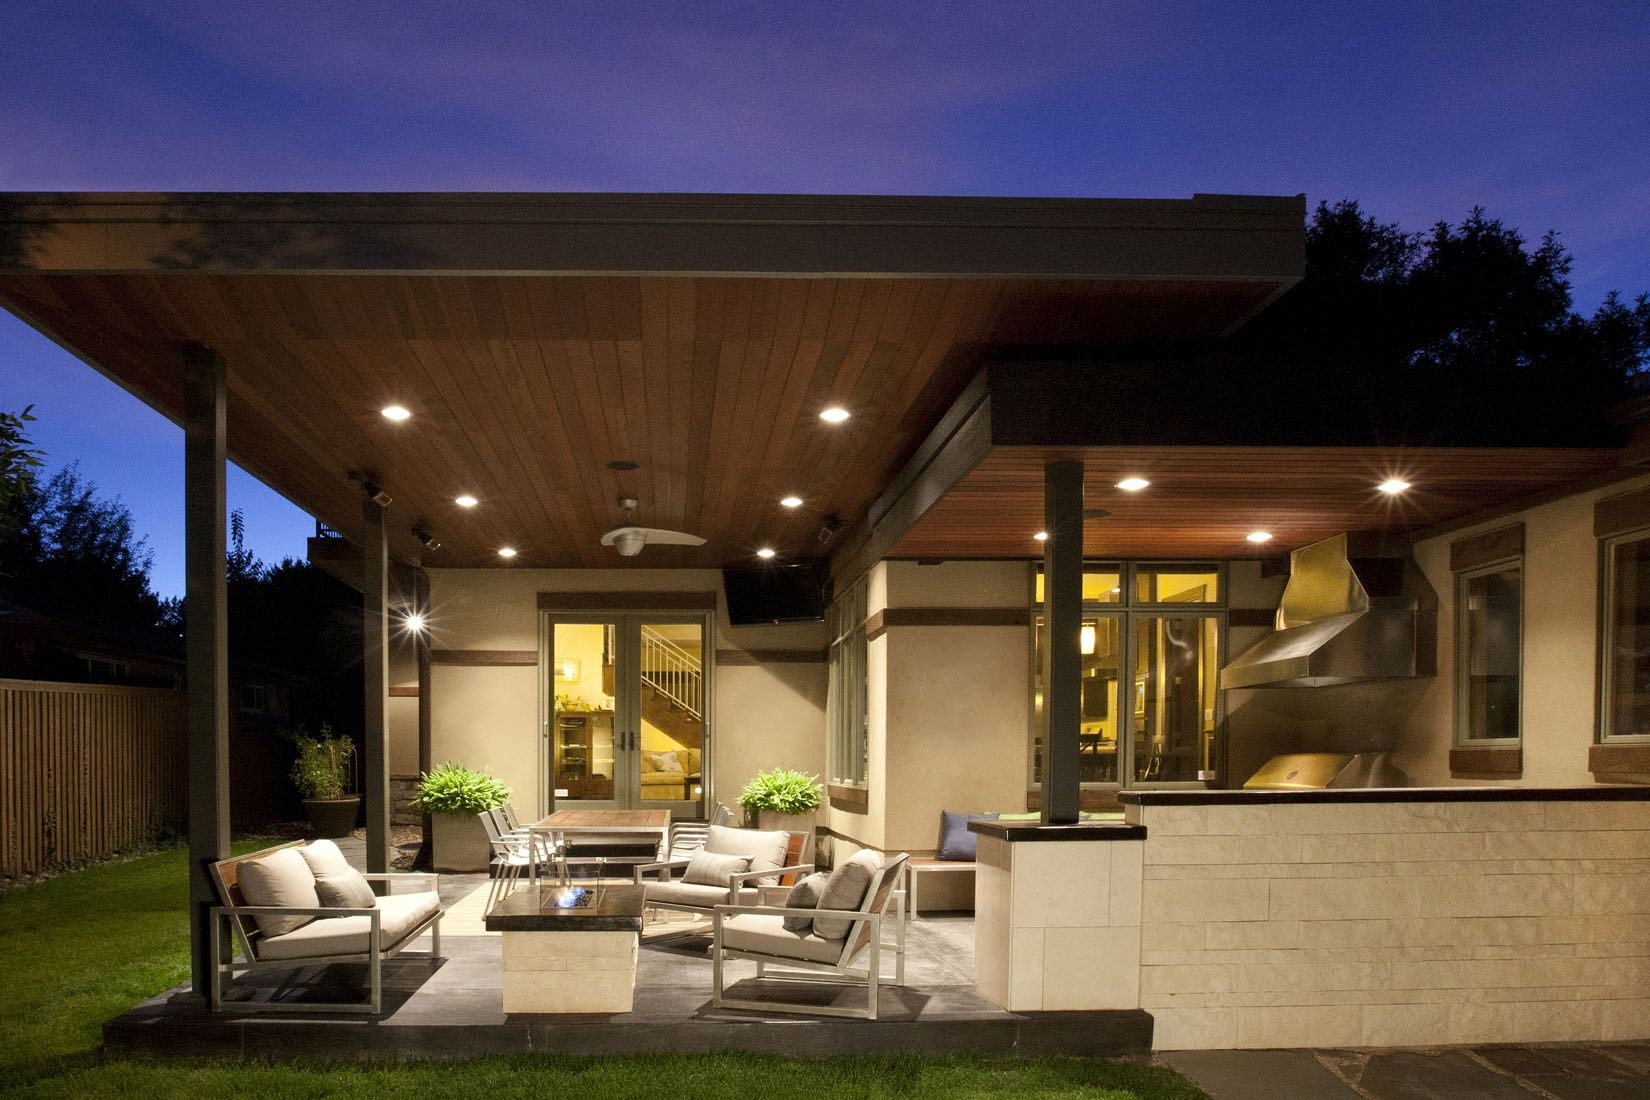 Adition Decoration Outdoor Living Areas Modern Patio With Wood Covers Design Ideas Lighting And Furniture Tips